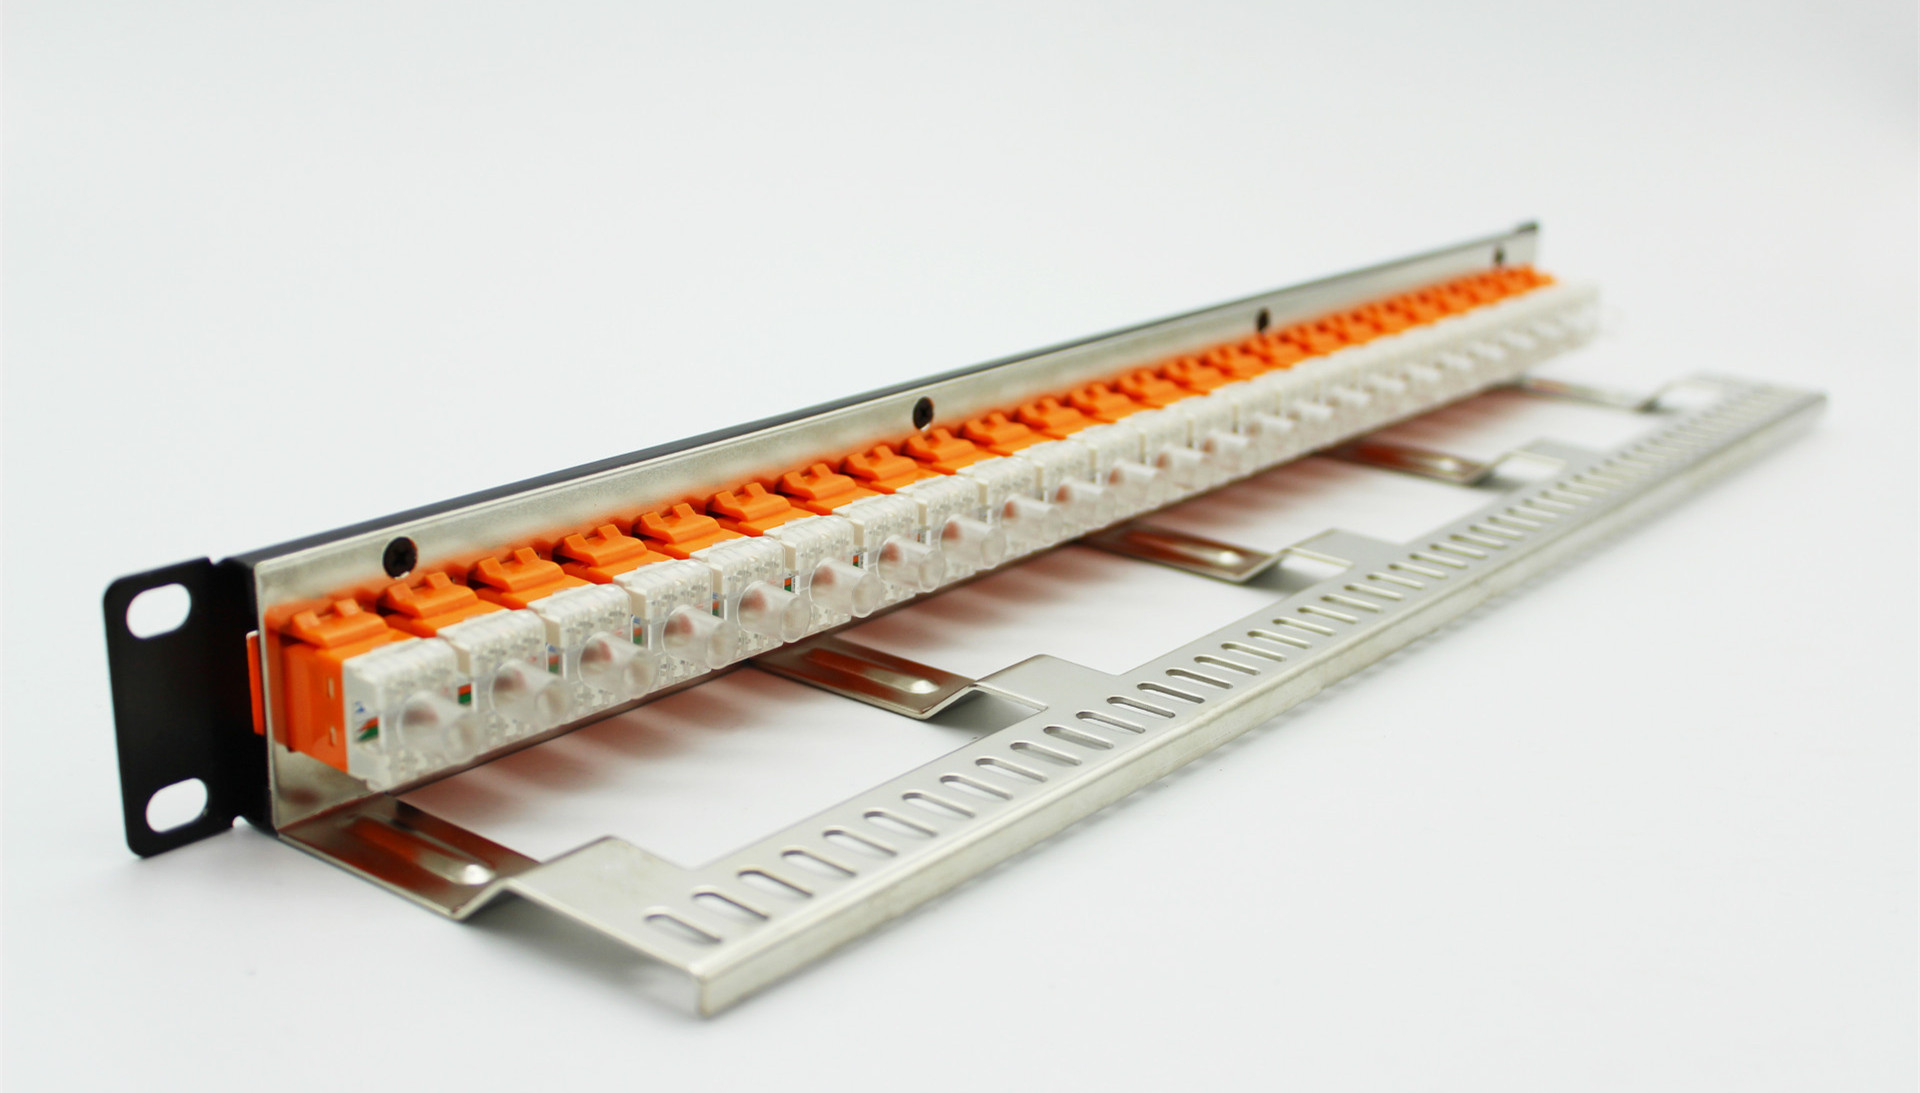 Network Cat5e Modular Patch Panel 24port Rj45 Panels With Wiring Telephone 110 To Rj 45 Keystone Jacks For Sale Copper Cabling Accessories Manufacturer From China 105787795